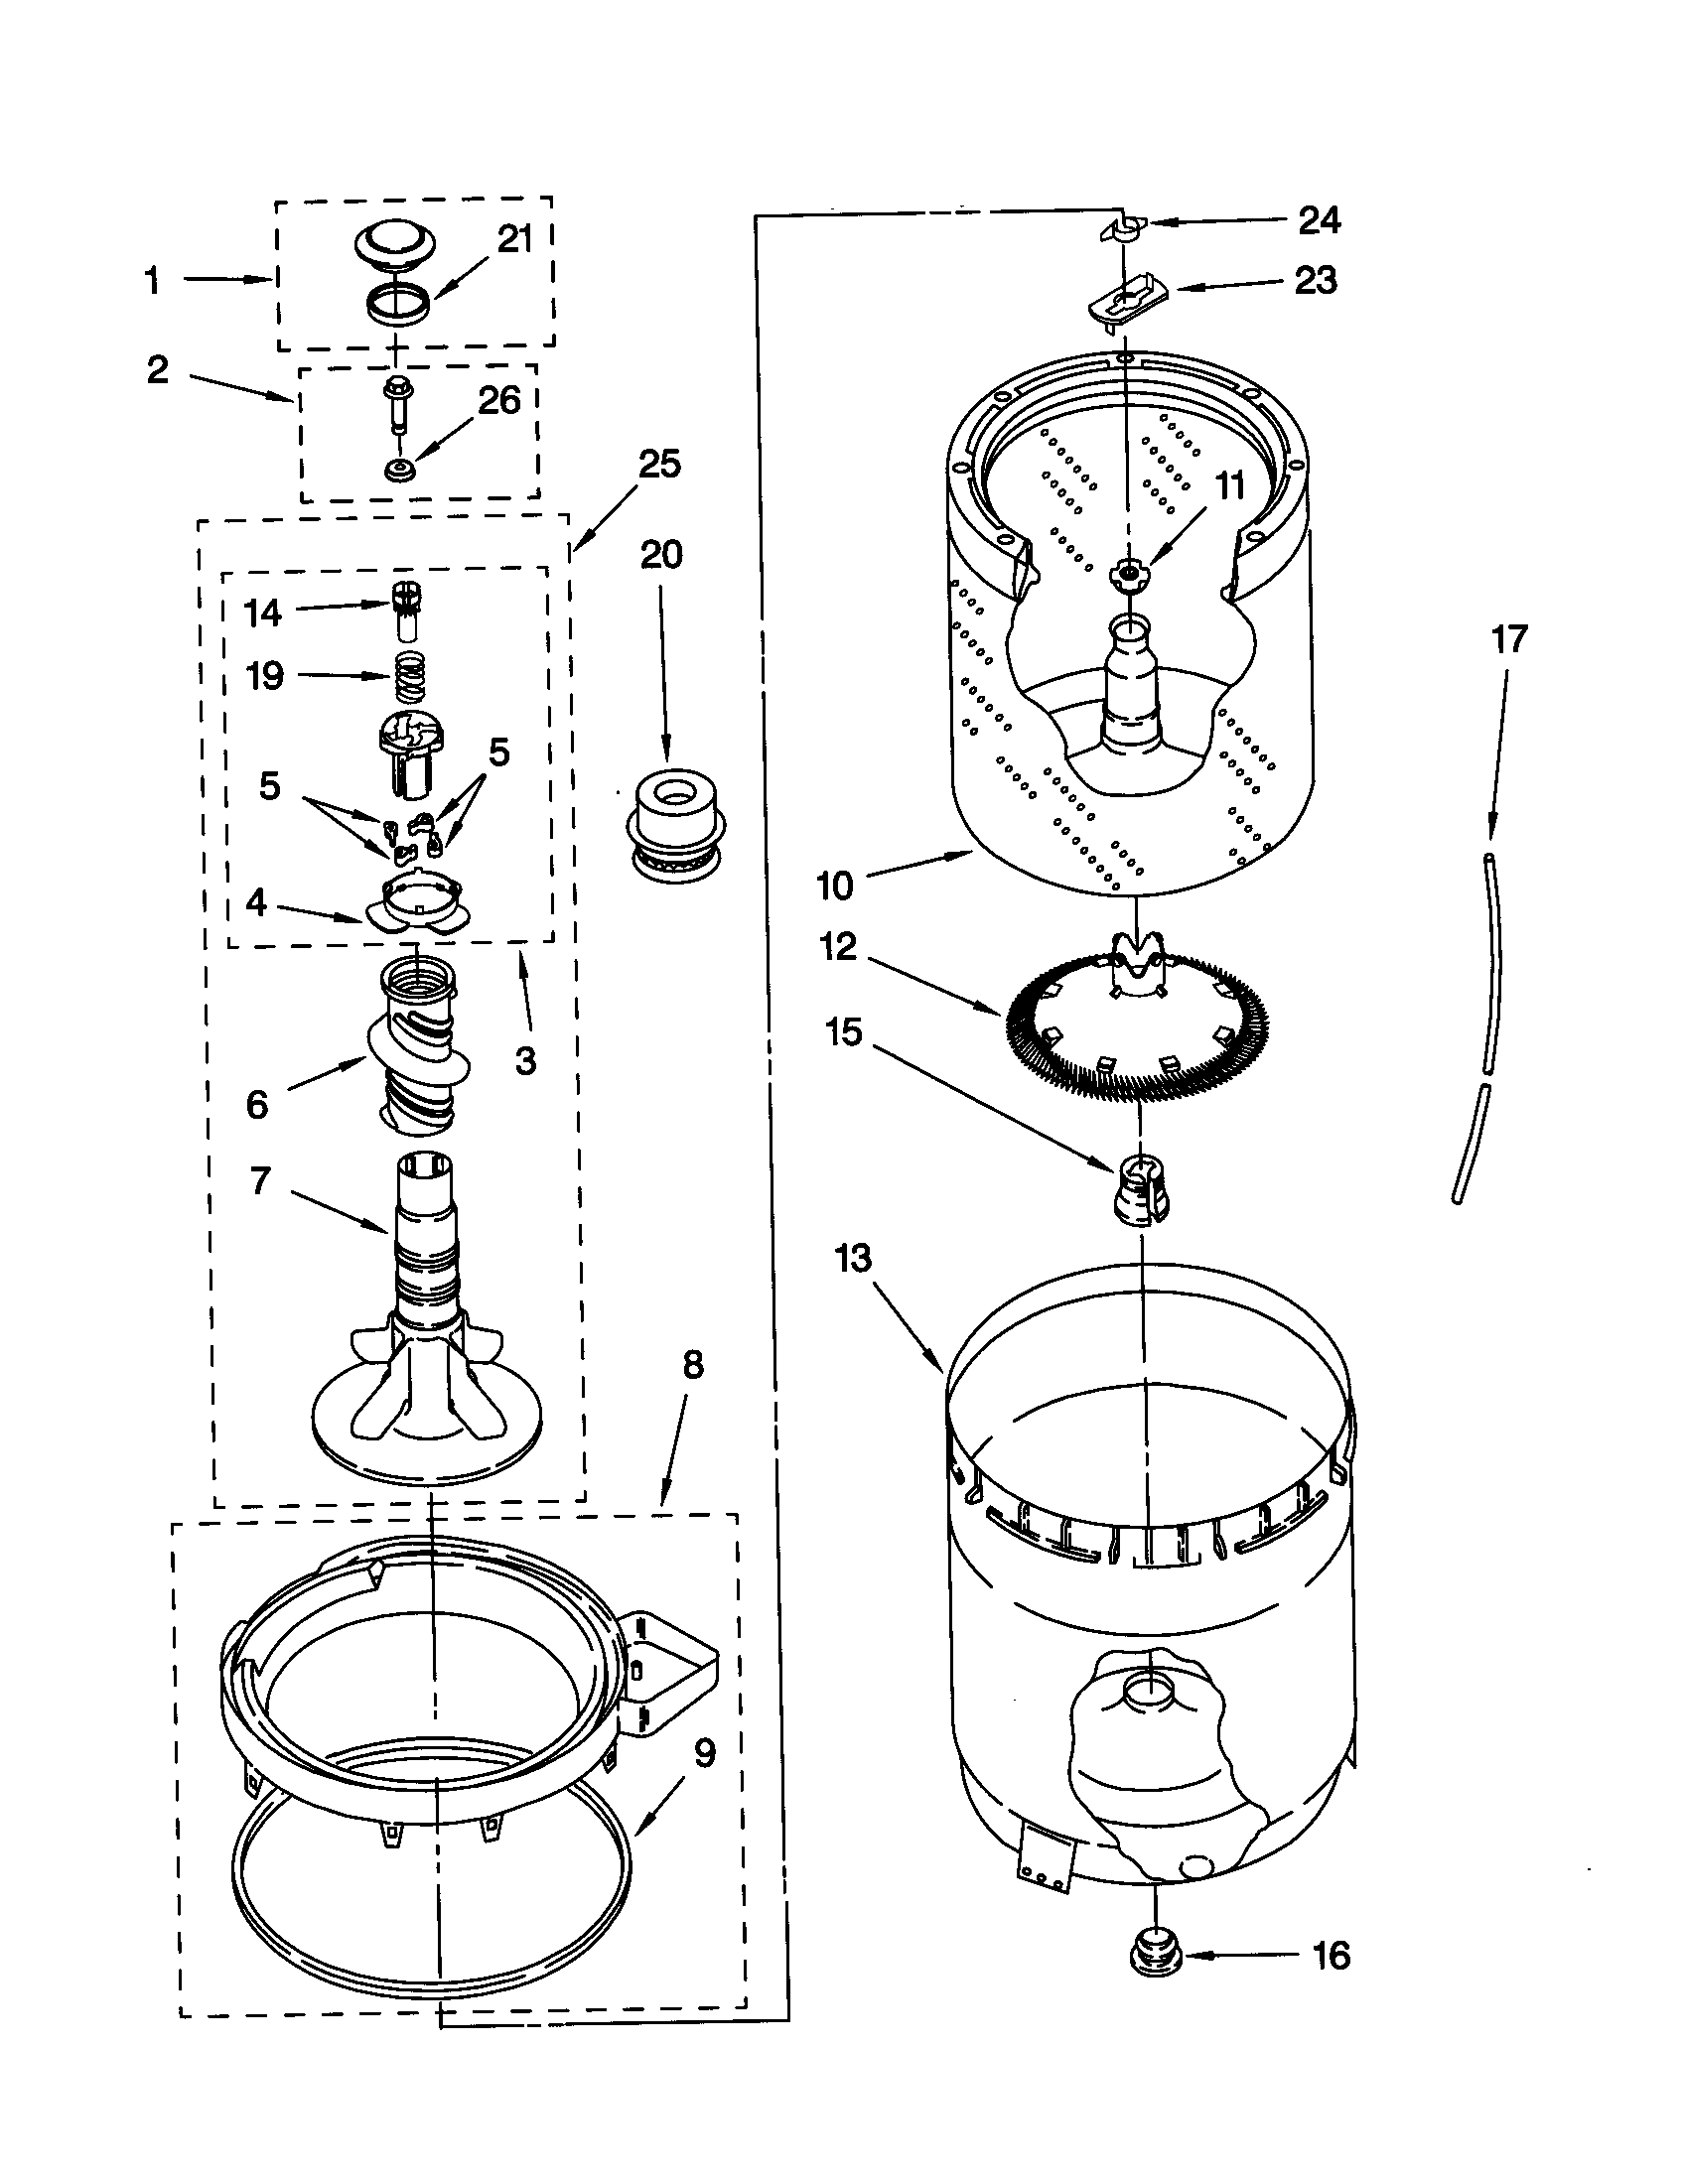 AGITATOR, BASKET AND TUB Diagram & Parts List for Model